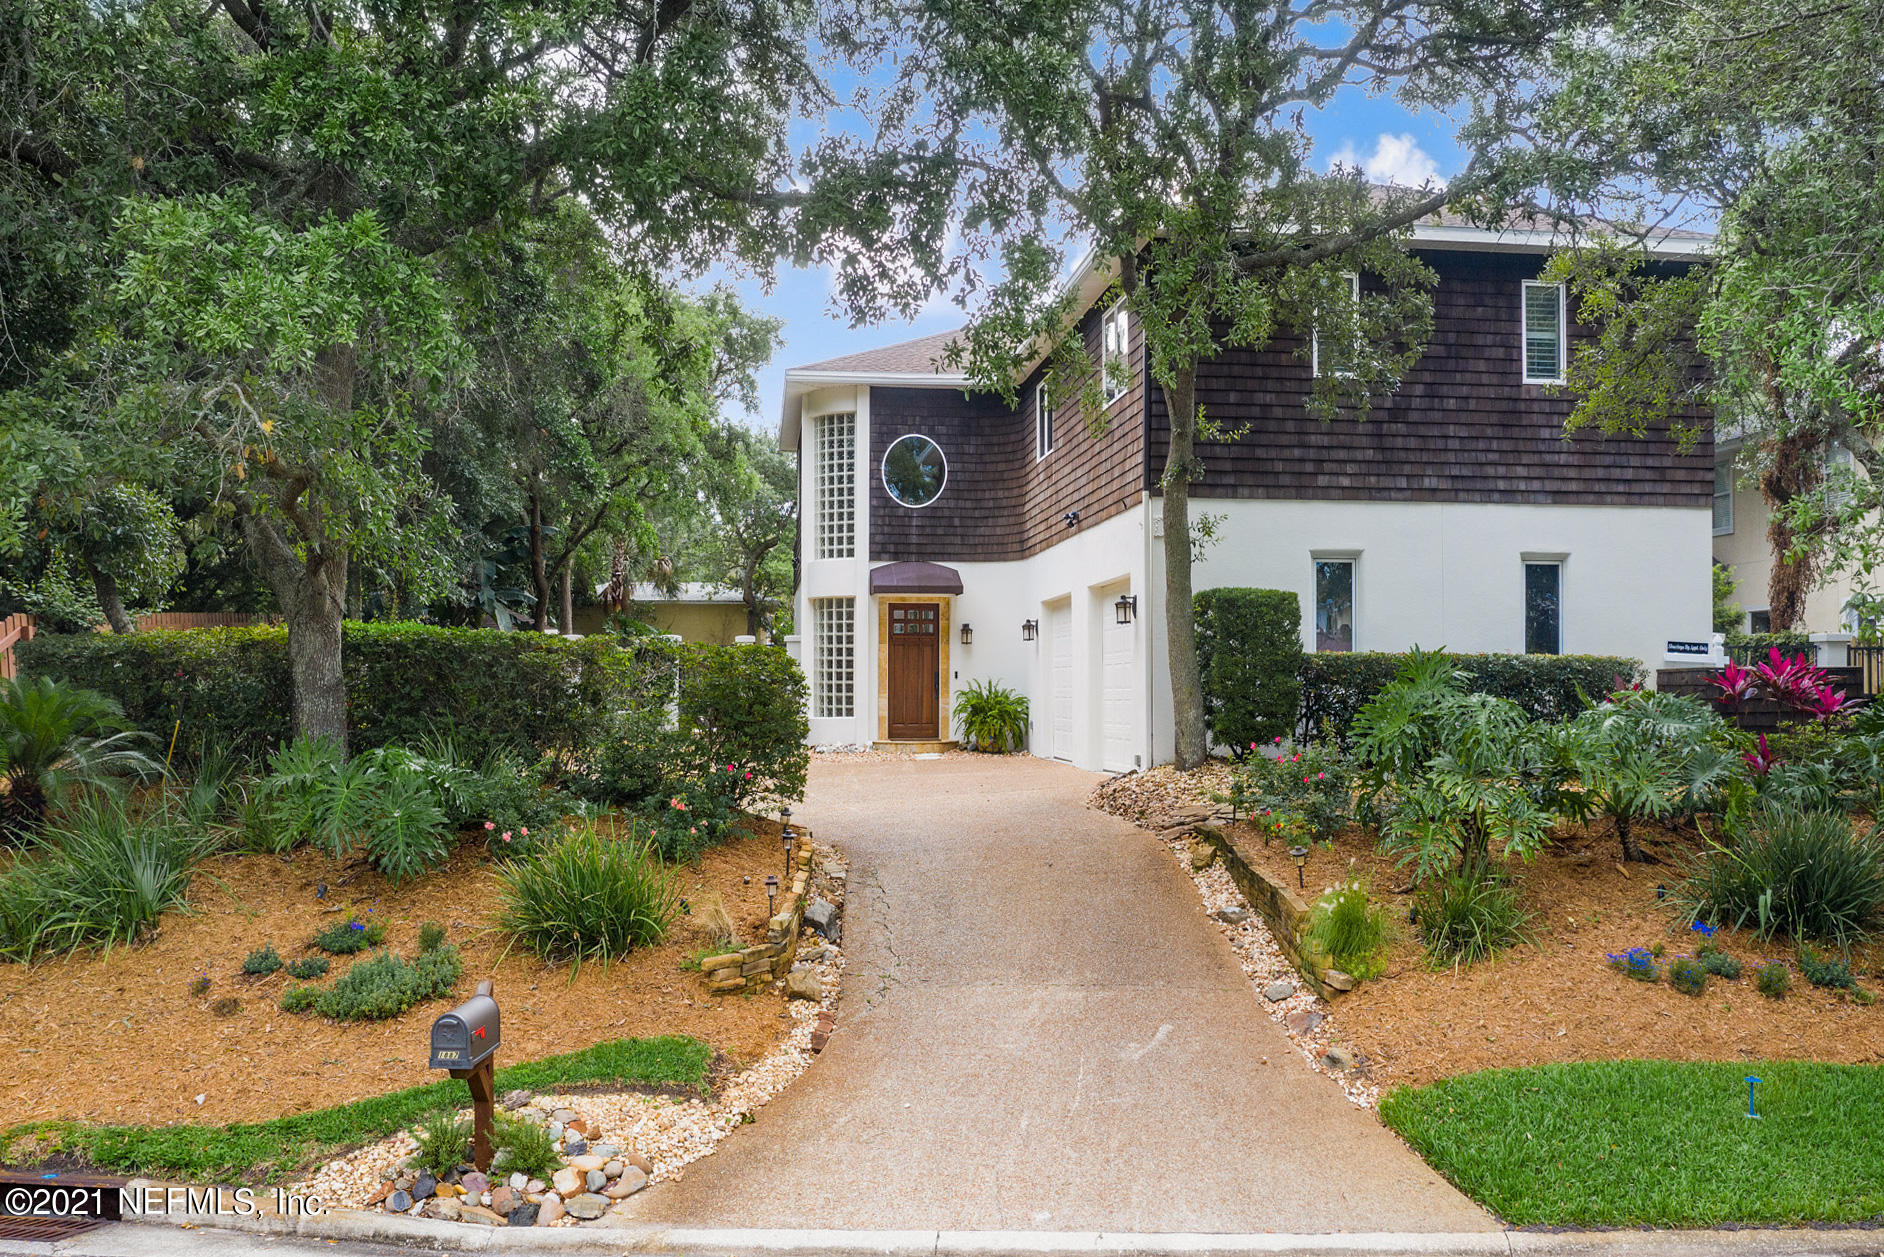 *OPEN HOUSE 7/31/21 FROM 3PM-5PM* Tucked away in a small cul-de-sac neighborhood in the heart of Atlantic Beach stands this alluring residence on a large private lot just three houses from the ocean. This timeless beauty is located steps to beach access and offers a sweeping backyard including a spacious pool, lush landscaping, detached pool bath, and plenty of entertaining space that will make you feel as if you were in a tropical oasis. The many large windows and glass doors showcase the panoramic views and allow for a seamless transition from inside to out. This completely remodeled home features four bedrooms, three full baths, and one half bath. A perfect escape, yet biking distance to restaurants, shopping, parks, and entertainment